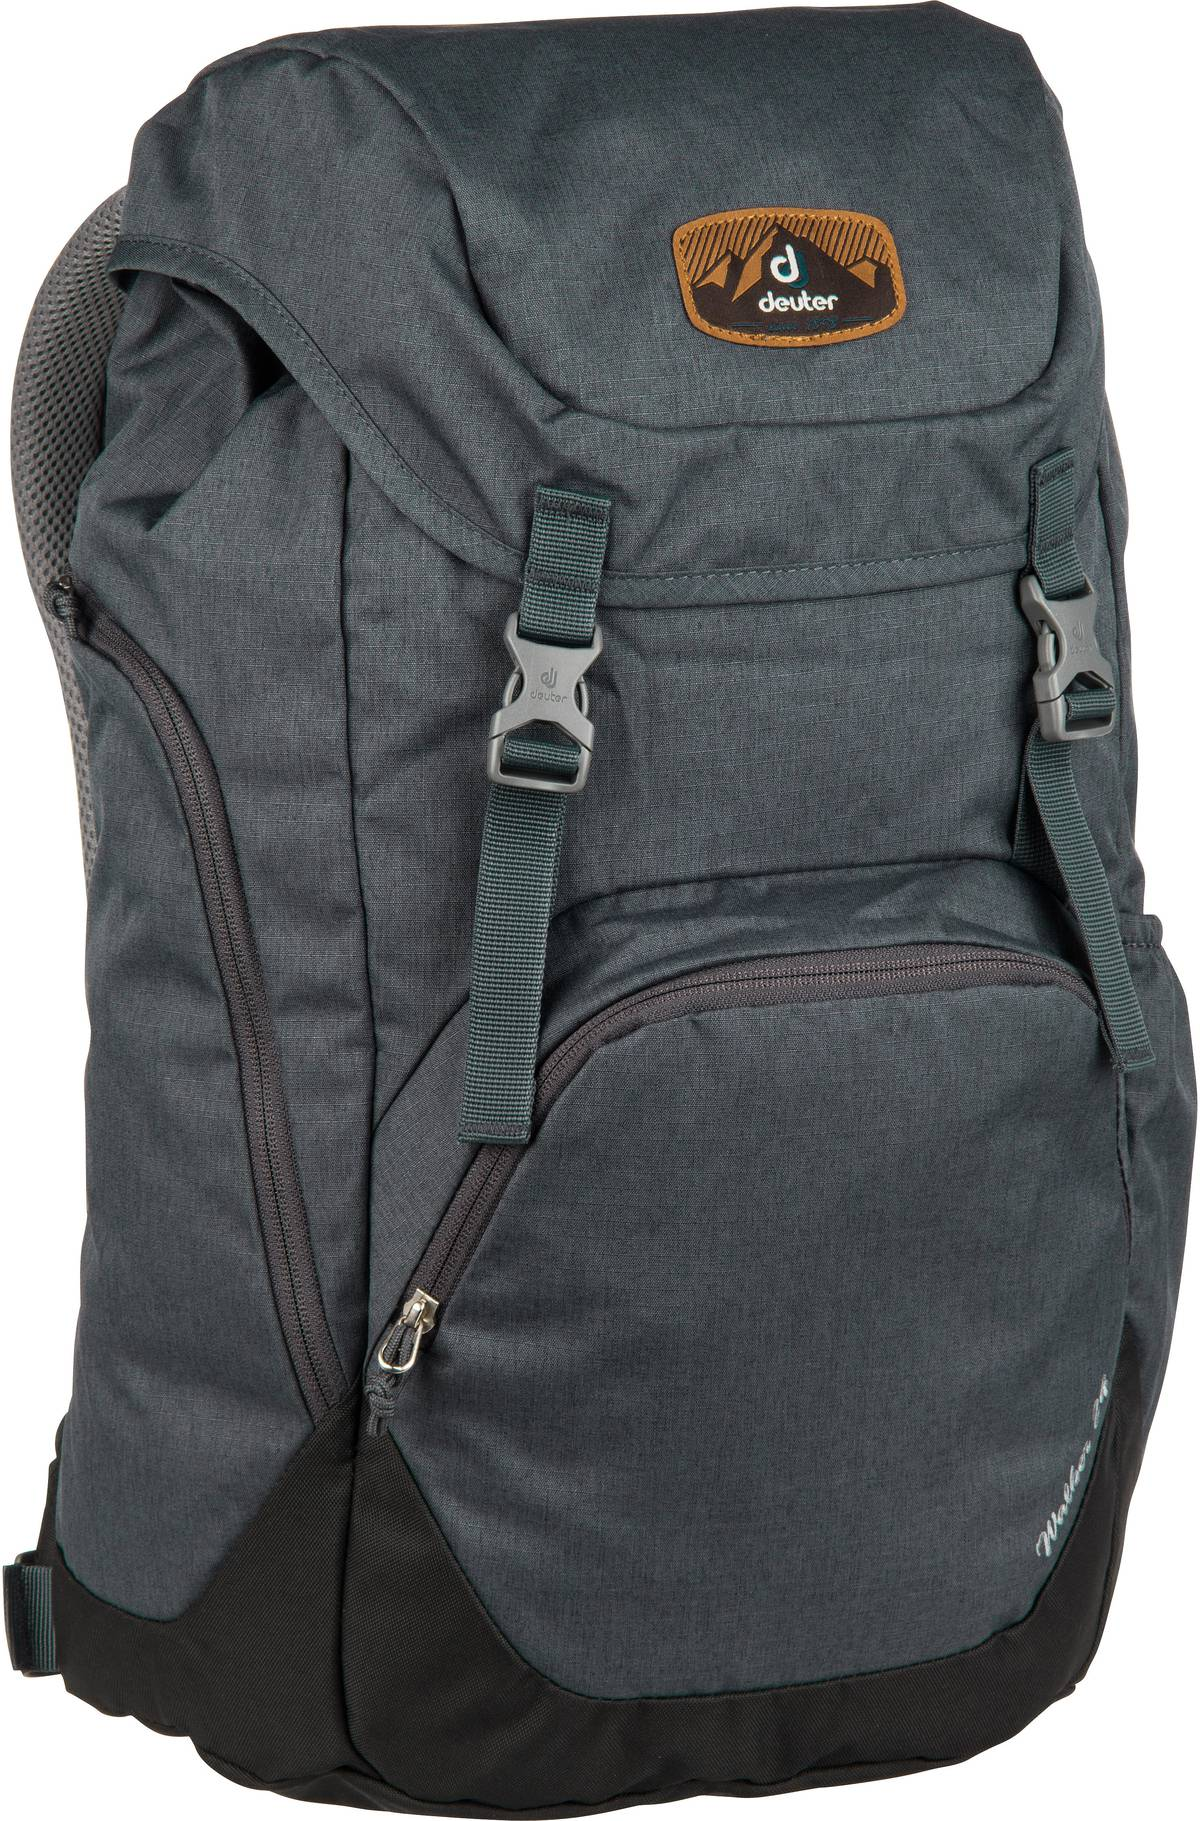 Laptoprucksack Walker 24 Graphite/Black (24 Liter)